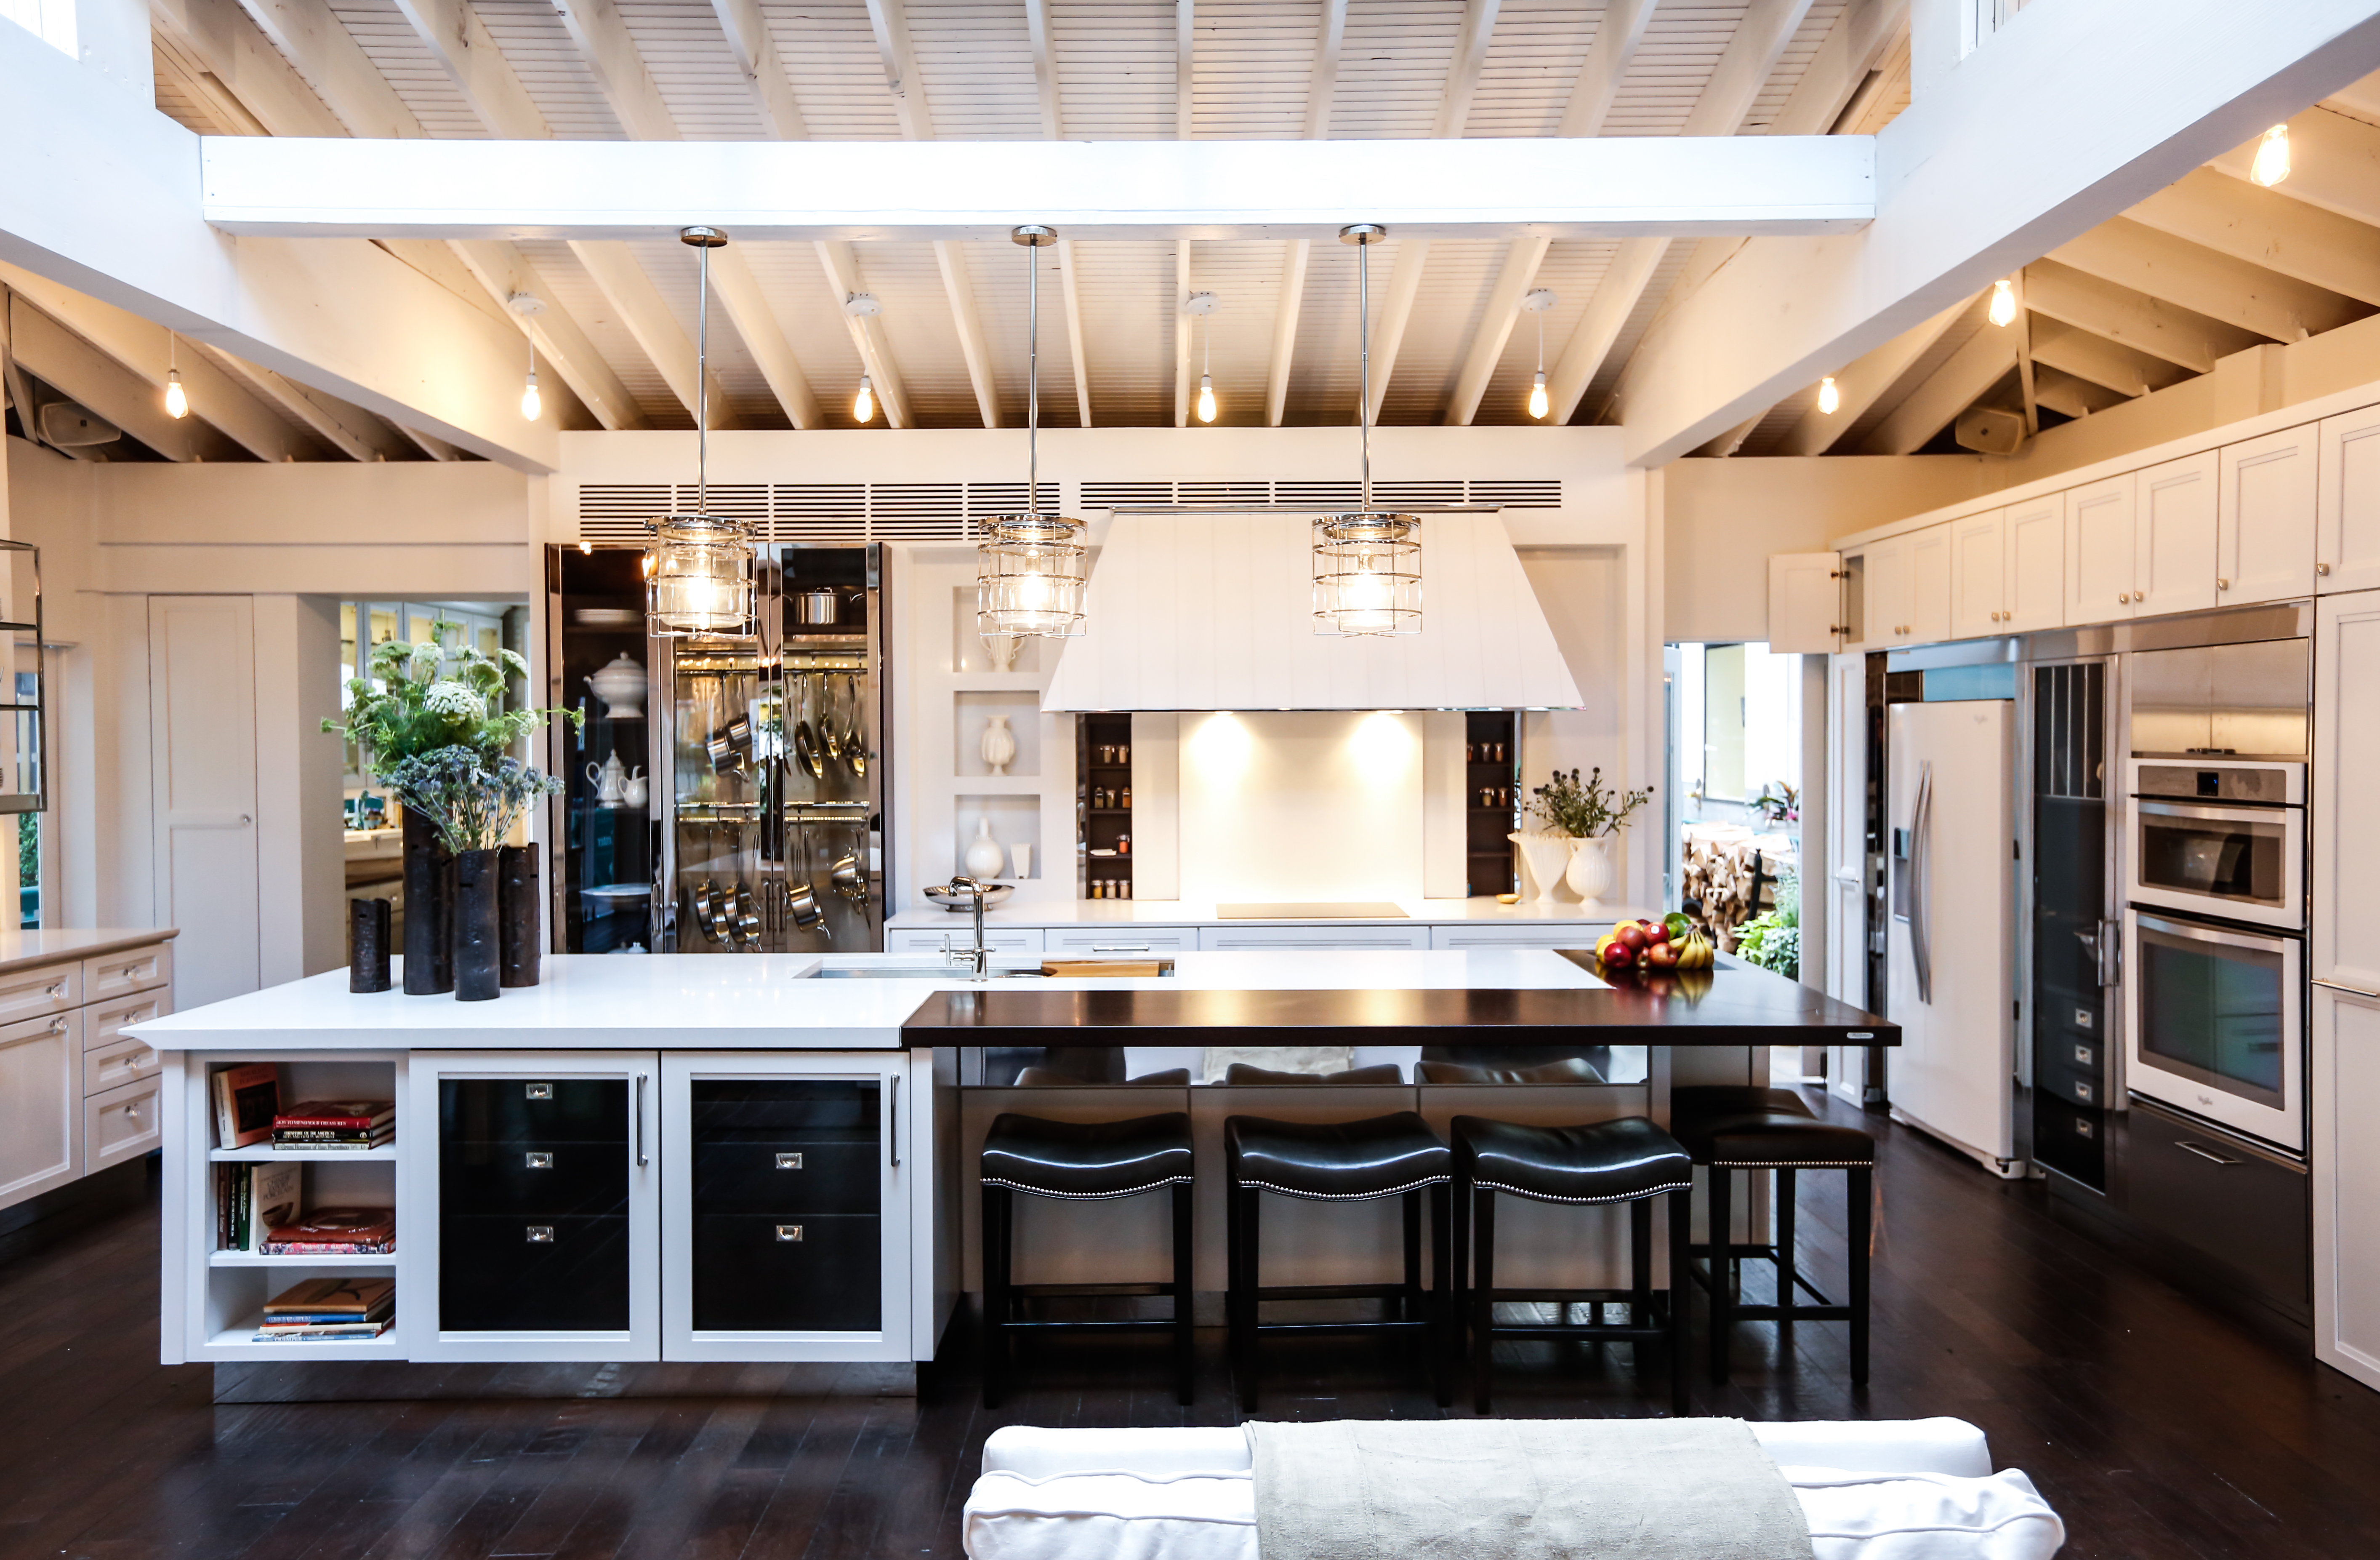 Wenge Wood Countertops with White Cabinetry